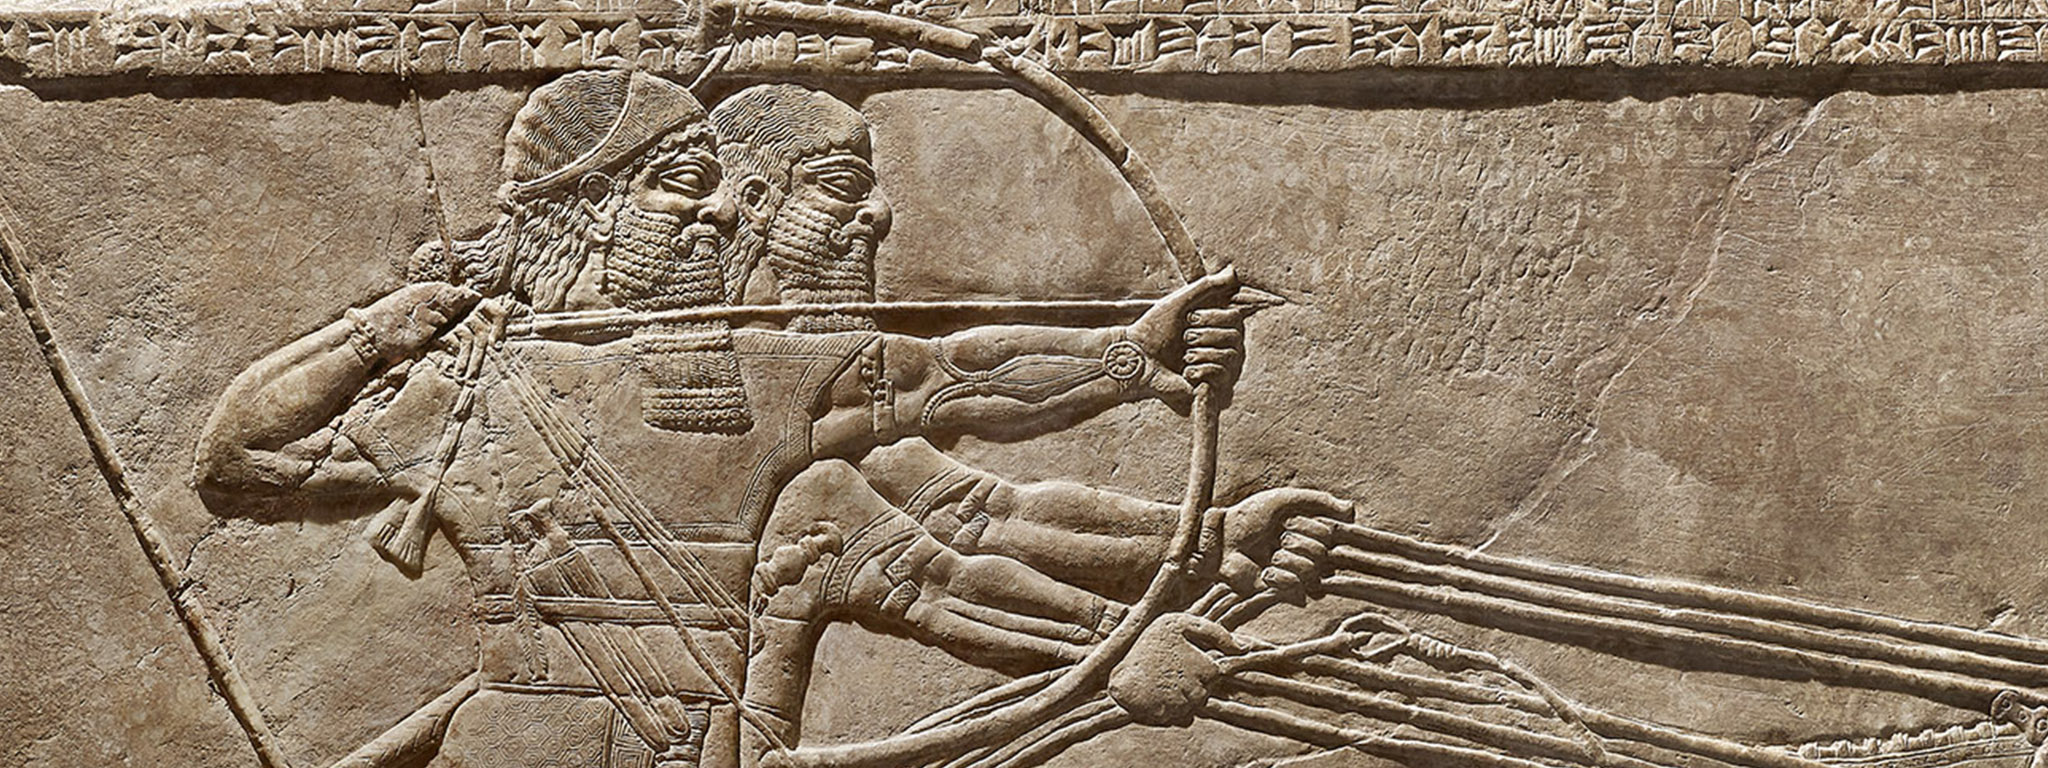 Royal Lion Hunt (detail), Assyrian, 875–860 BC, Kalhu (Nimrud), Northwest Palace, reign of Ashurnasirpal II, gypsum. British Museum, London, 1849,1222.8, 1849. Image © The Trustees of the British Museum. All rights reserved